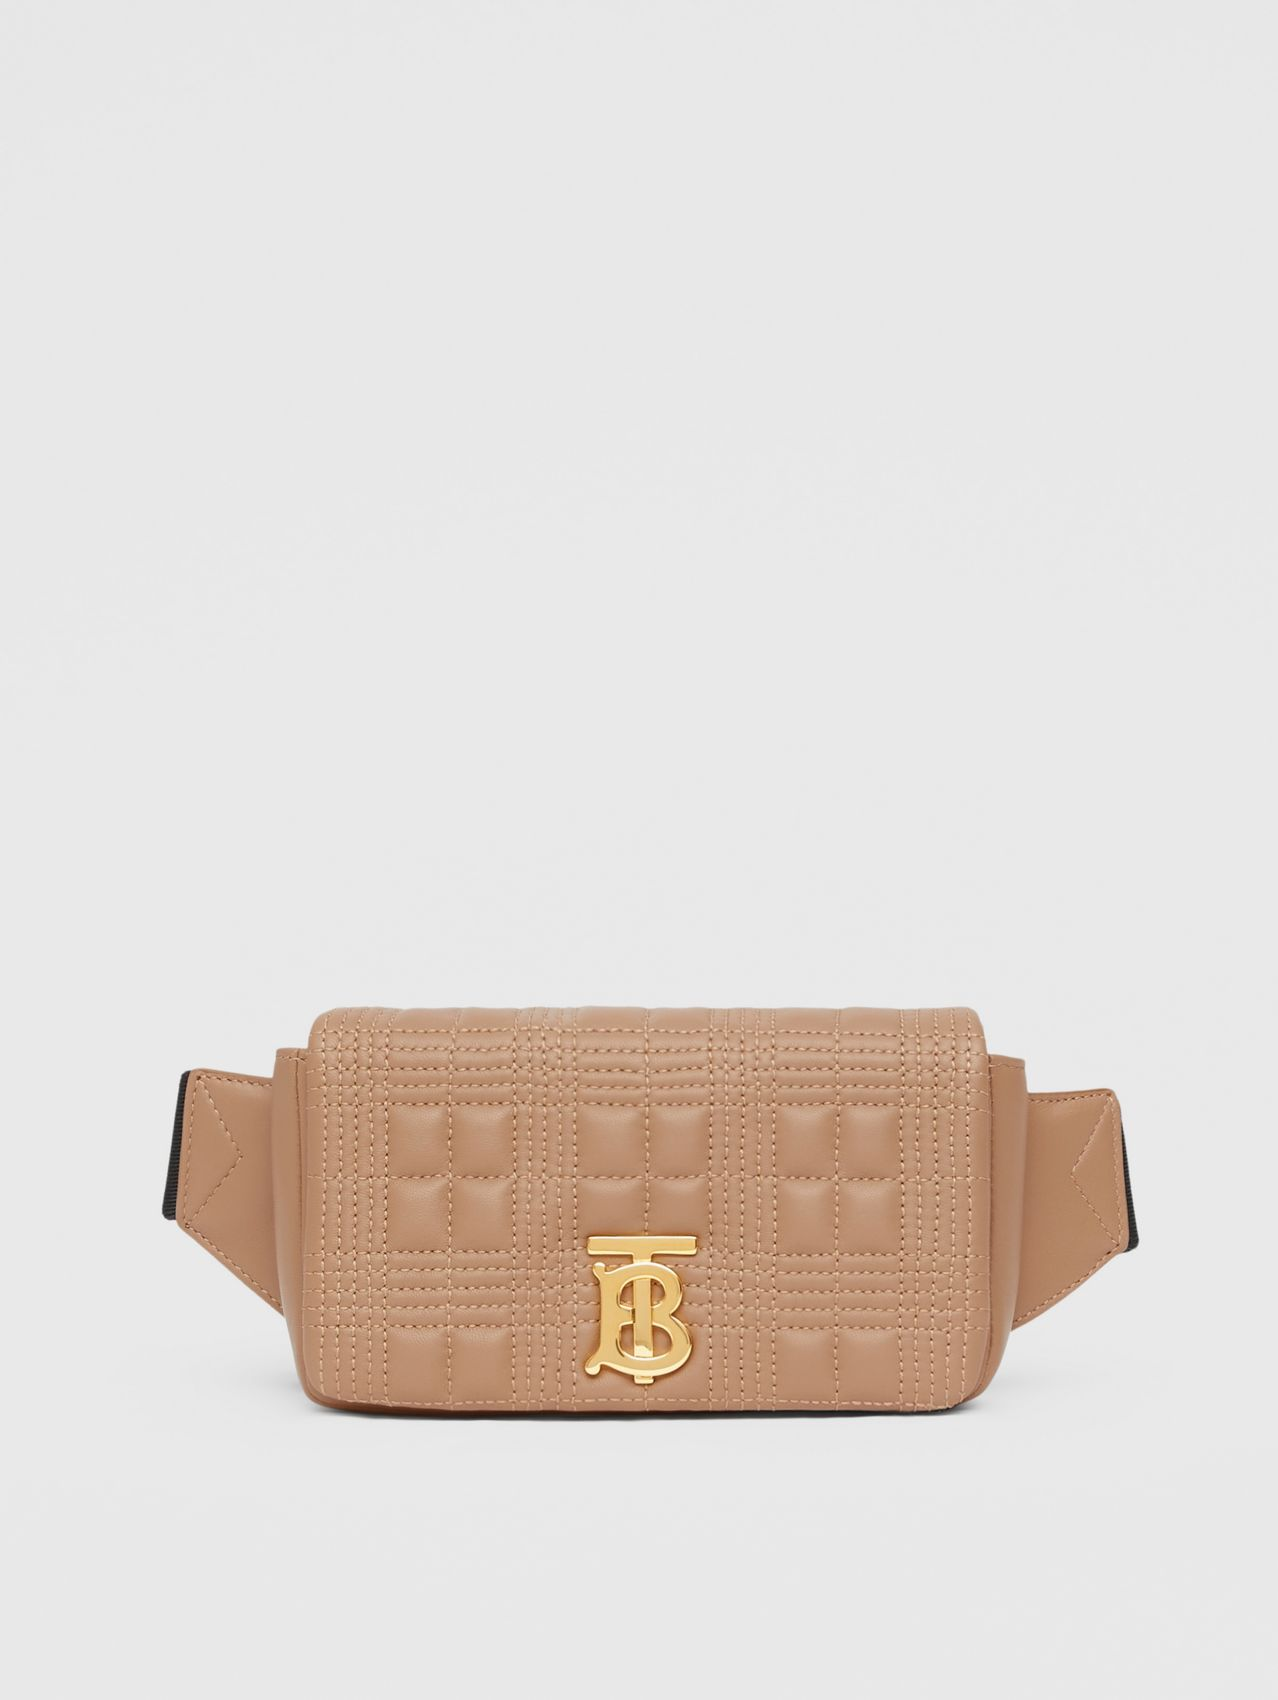 Quilted Lambskin Lola Bum Bag in Camel